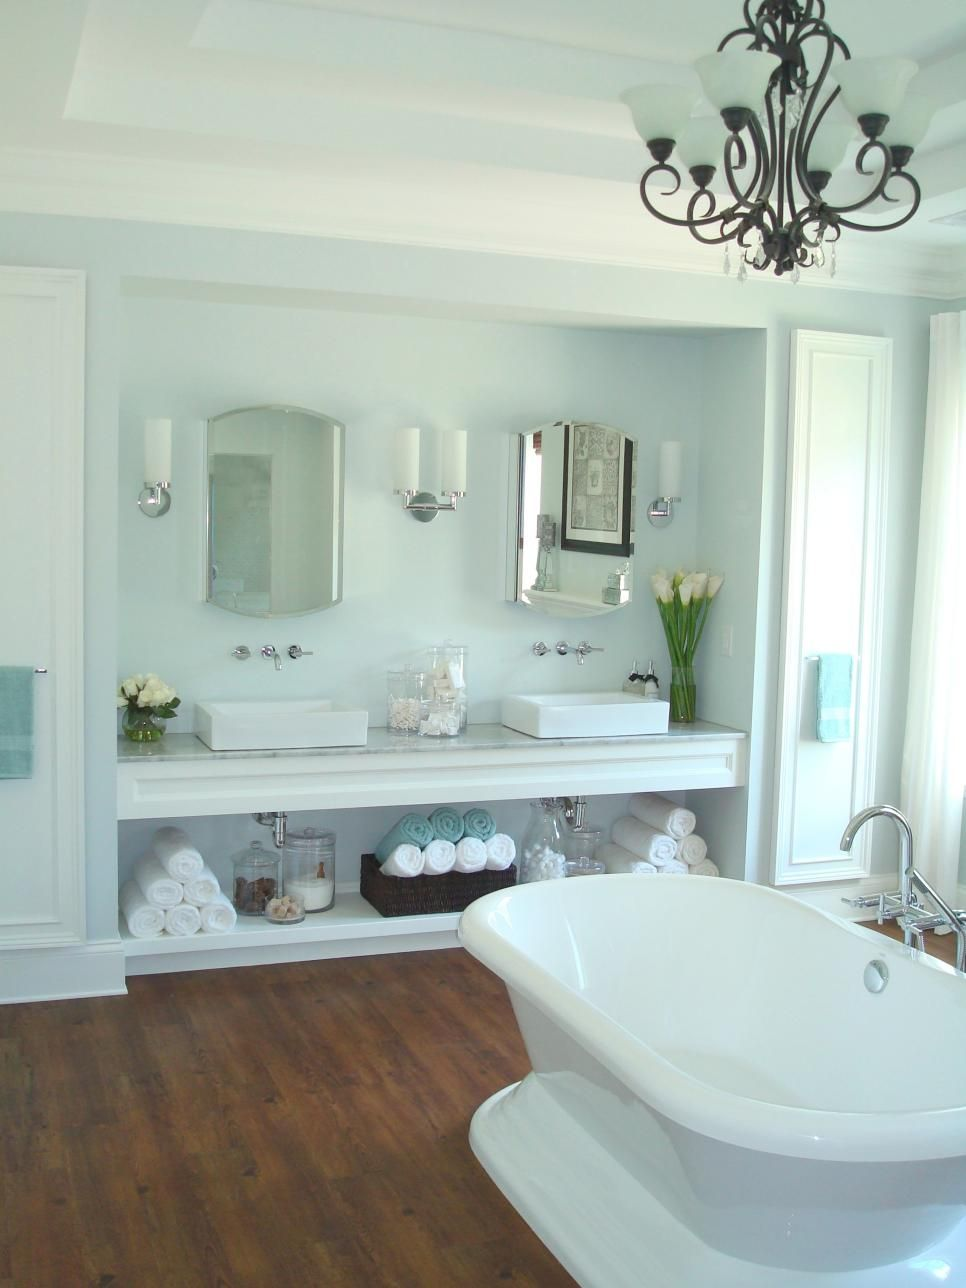 Bathroom Vanities for Any Style | Bathroom Design | Pinterest | Spa ...